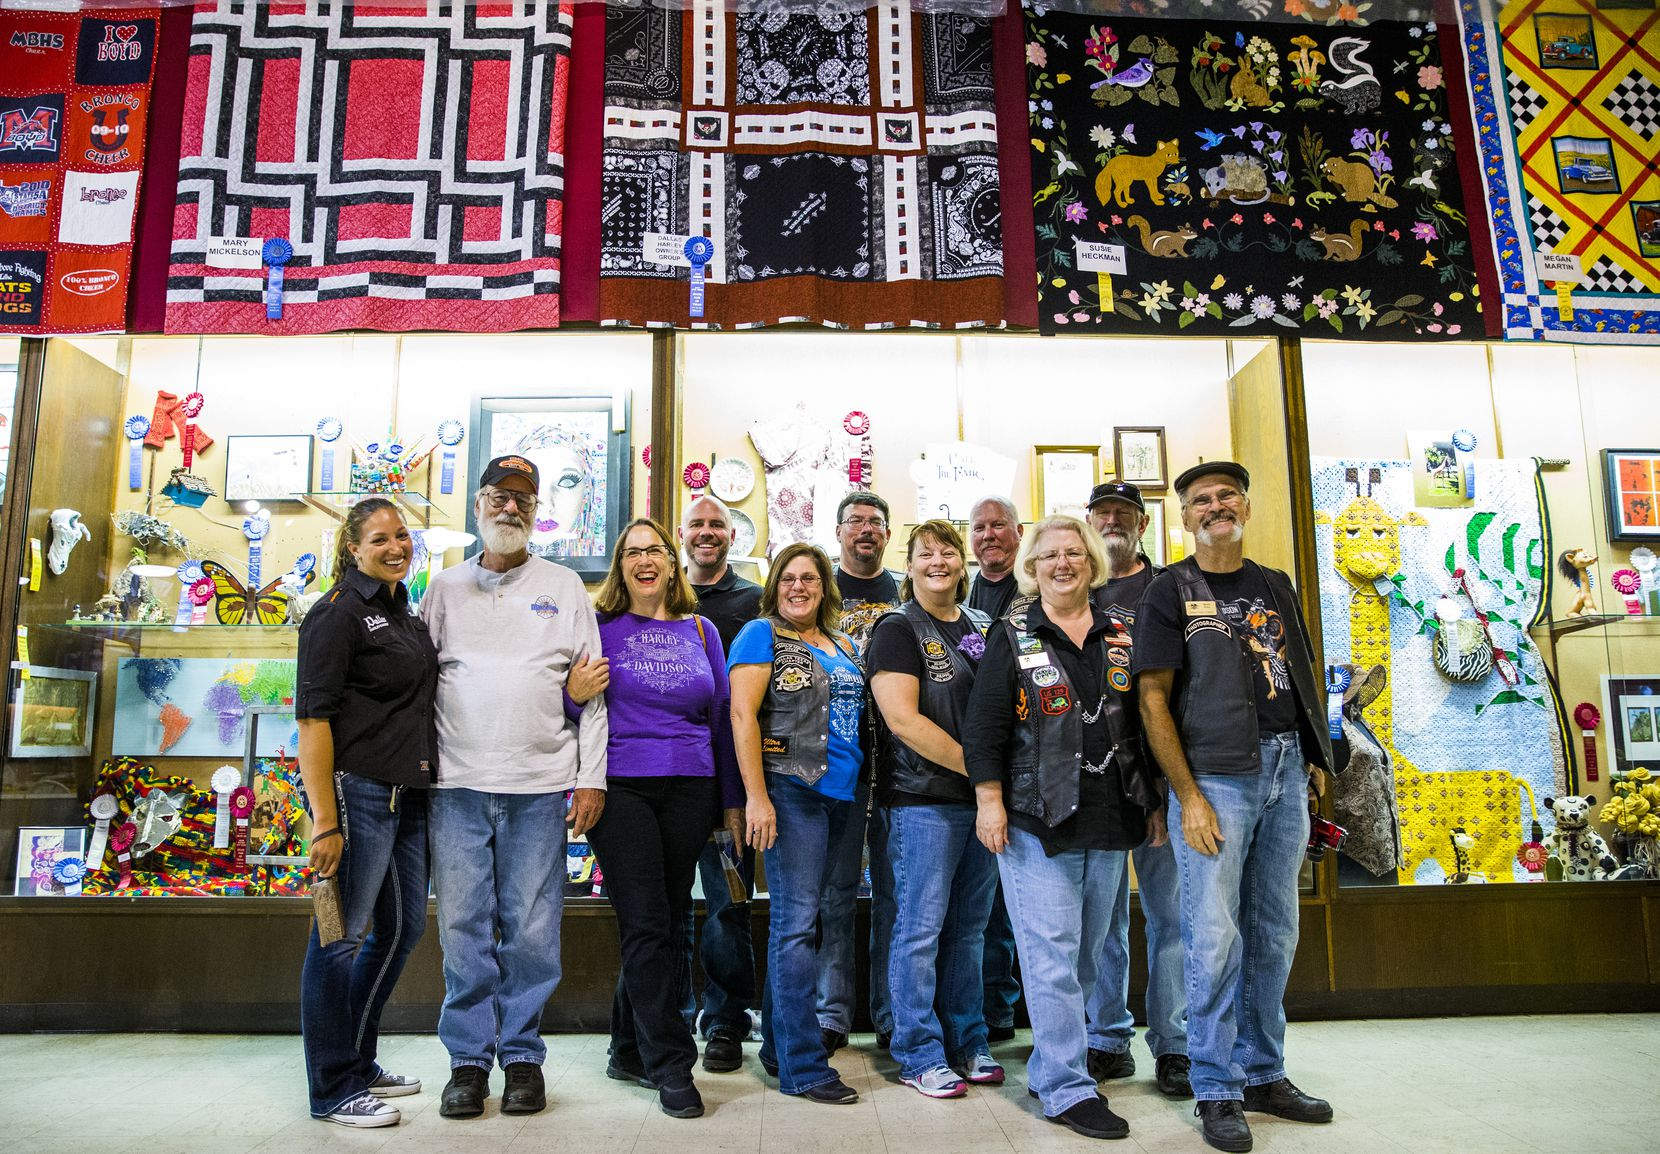 Members of the Dallas Harley Owners Group pose  beneath their prize-winning quilt.  Julie Steger (third from left, in purple), a longtime quilter, coordinated the operation.